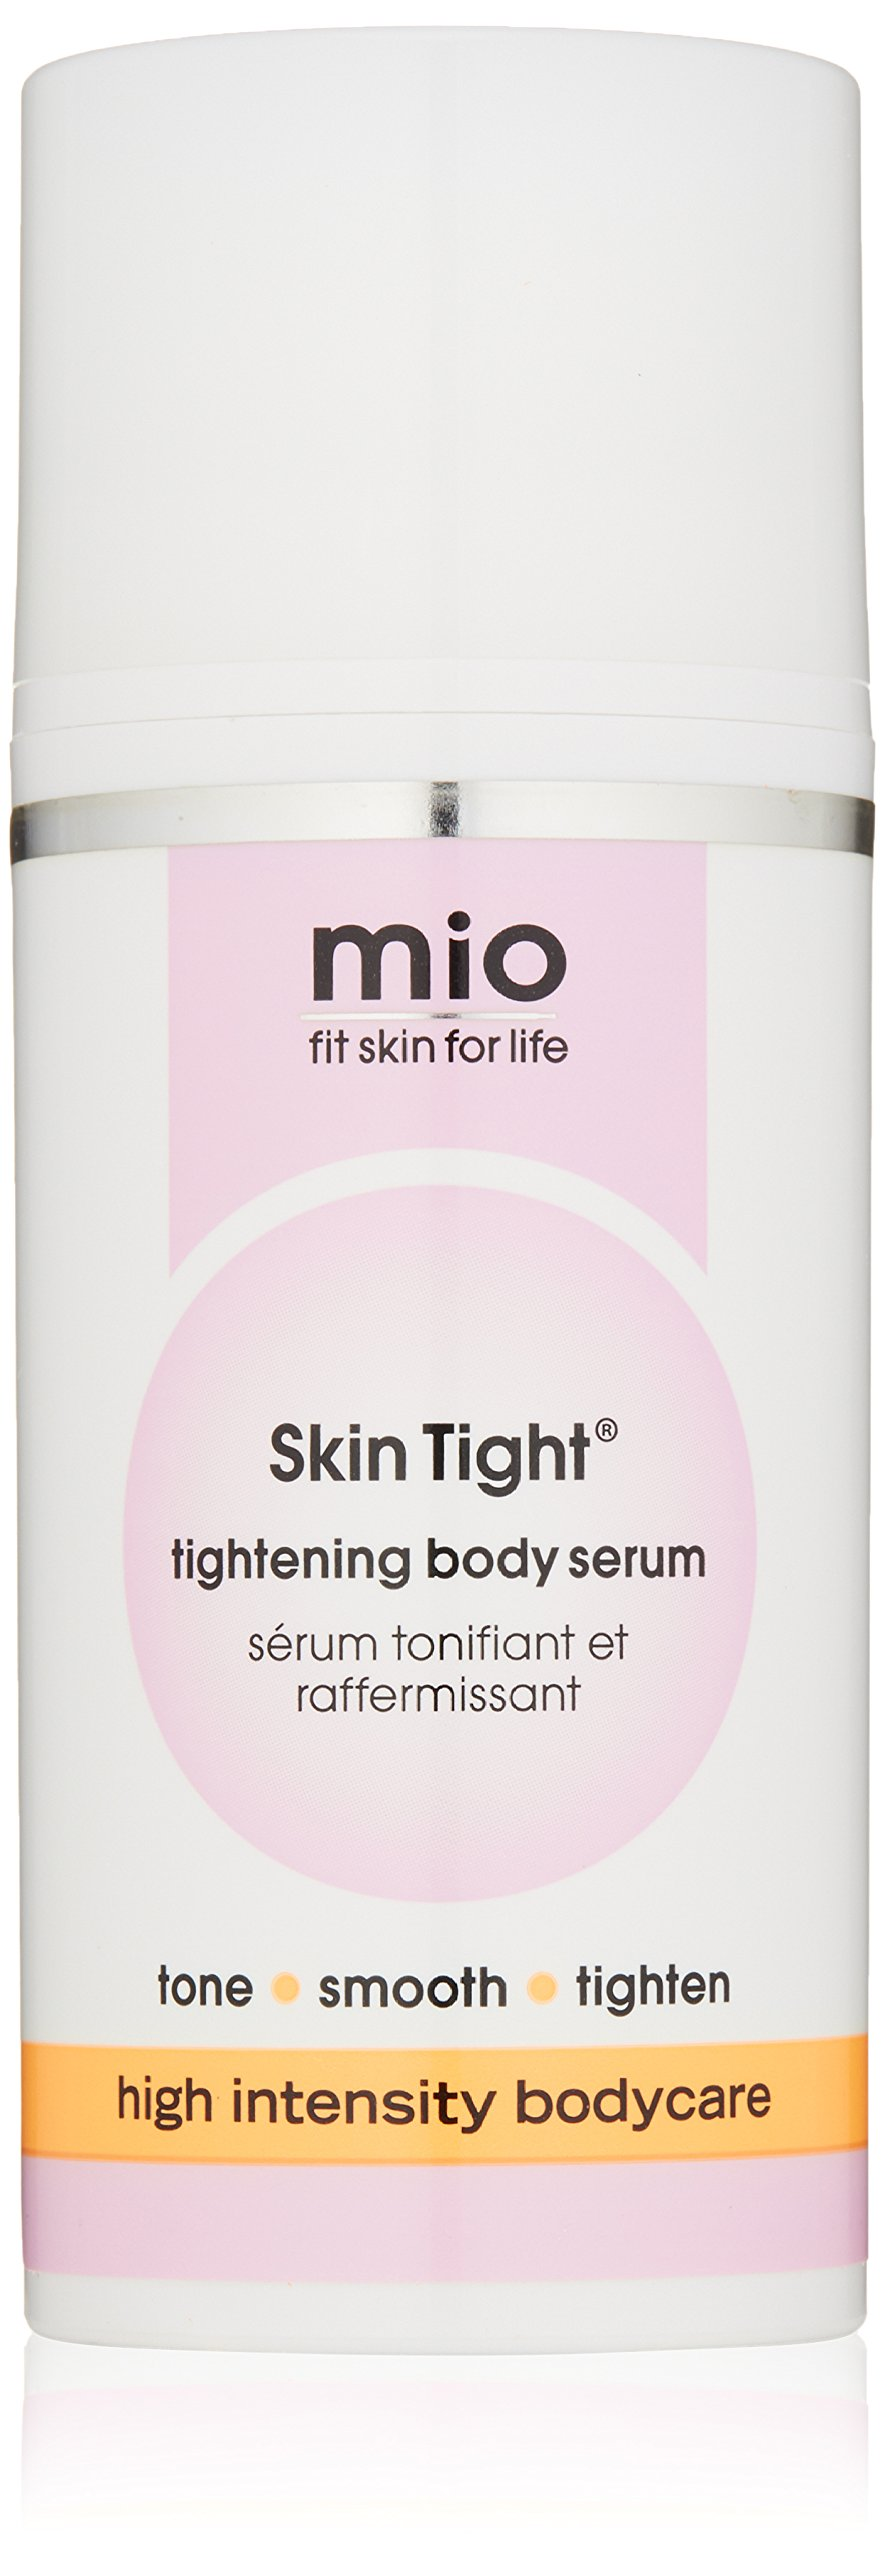 Mio Skin Tight Tightening Body Serum, 3.4 fl.oz